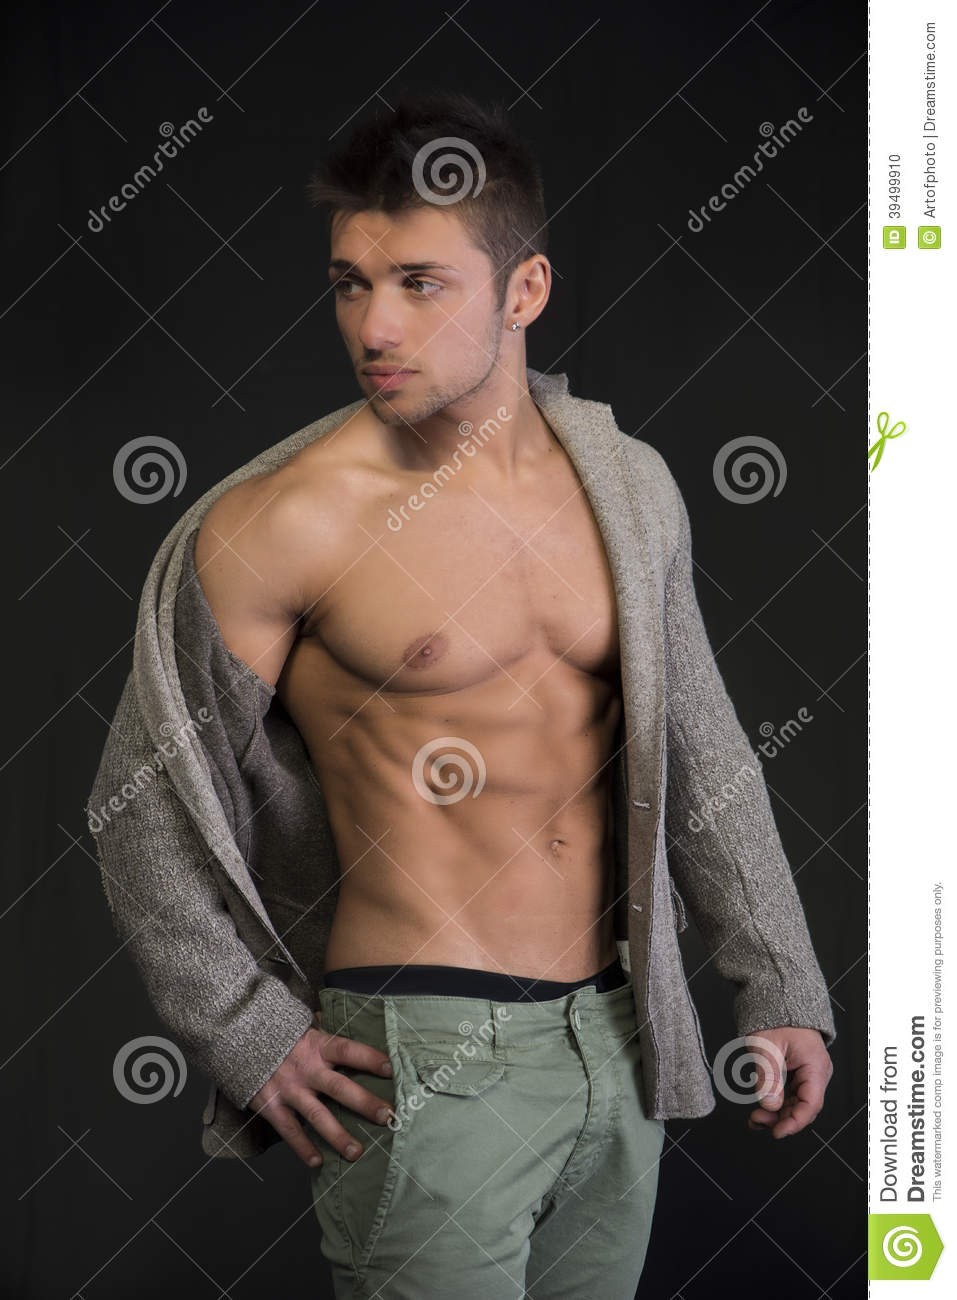 Attractive Young Man Open Jacket Muscular Torso Confident Ripped Abs Pecs Side View Stylish Guy Model